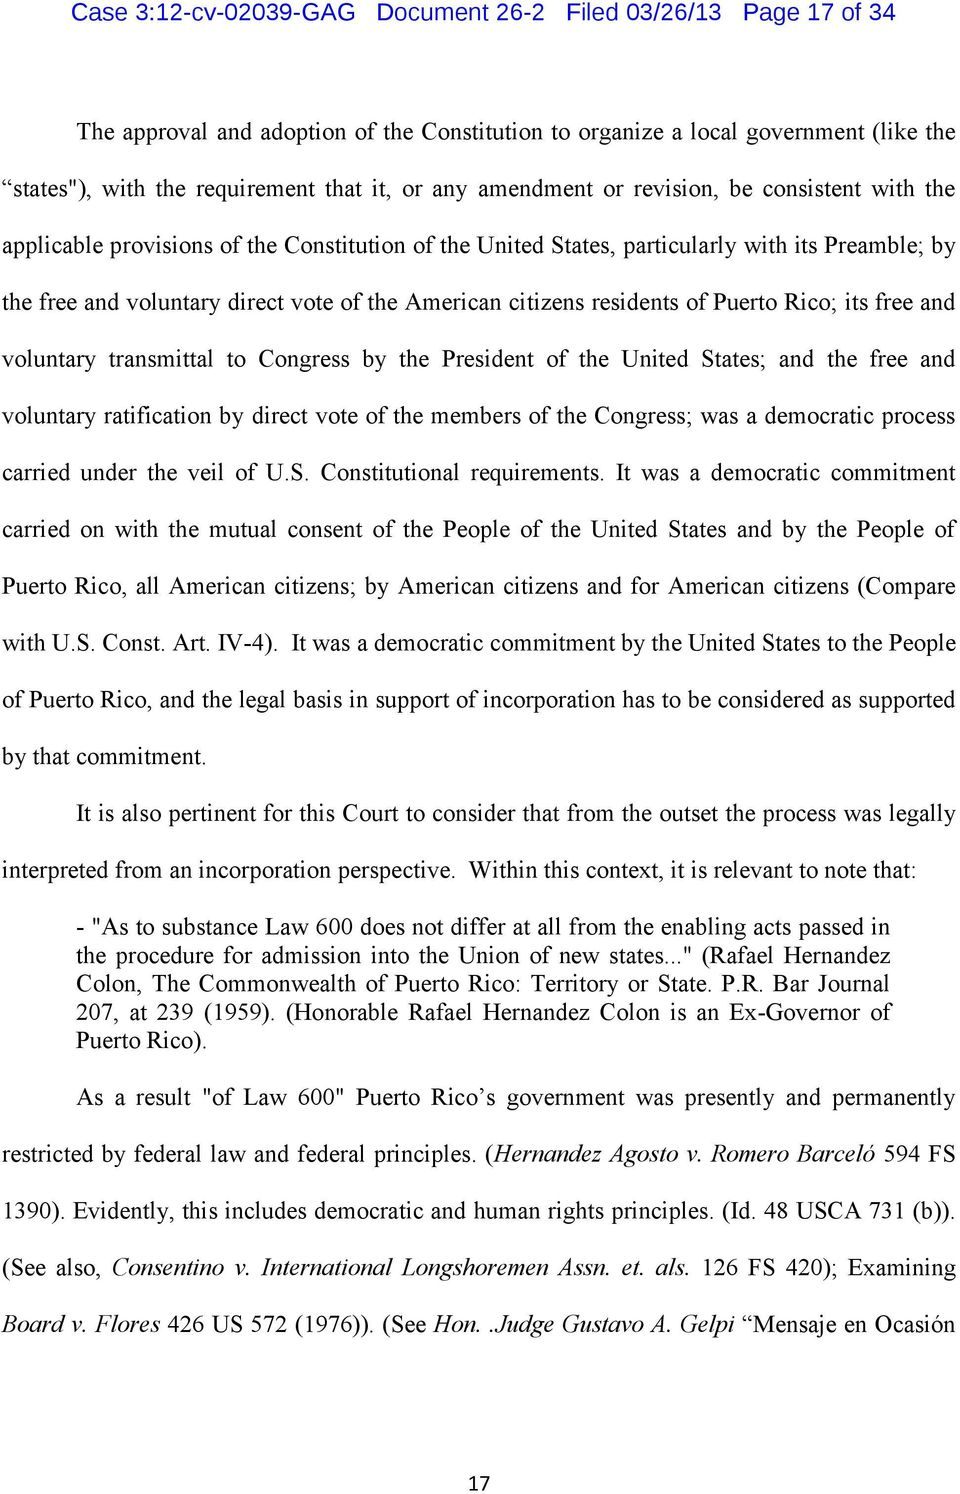 citizens residents of Puerto Rico; its free and voluntary transmittal to Congress by the President of the United States; and the free and voluntary ratification by direct vote of the members of the